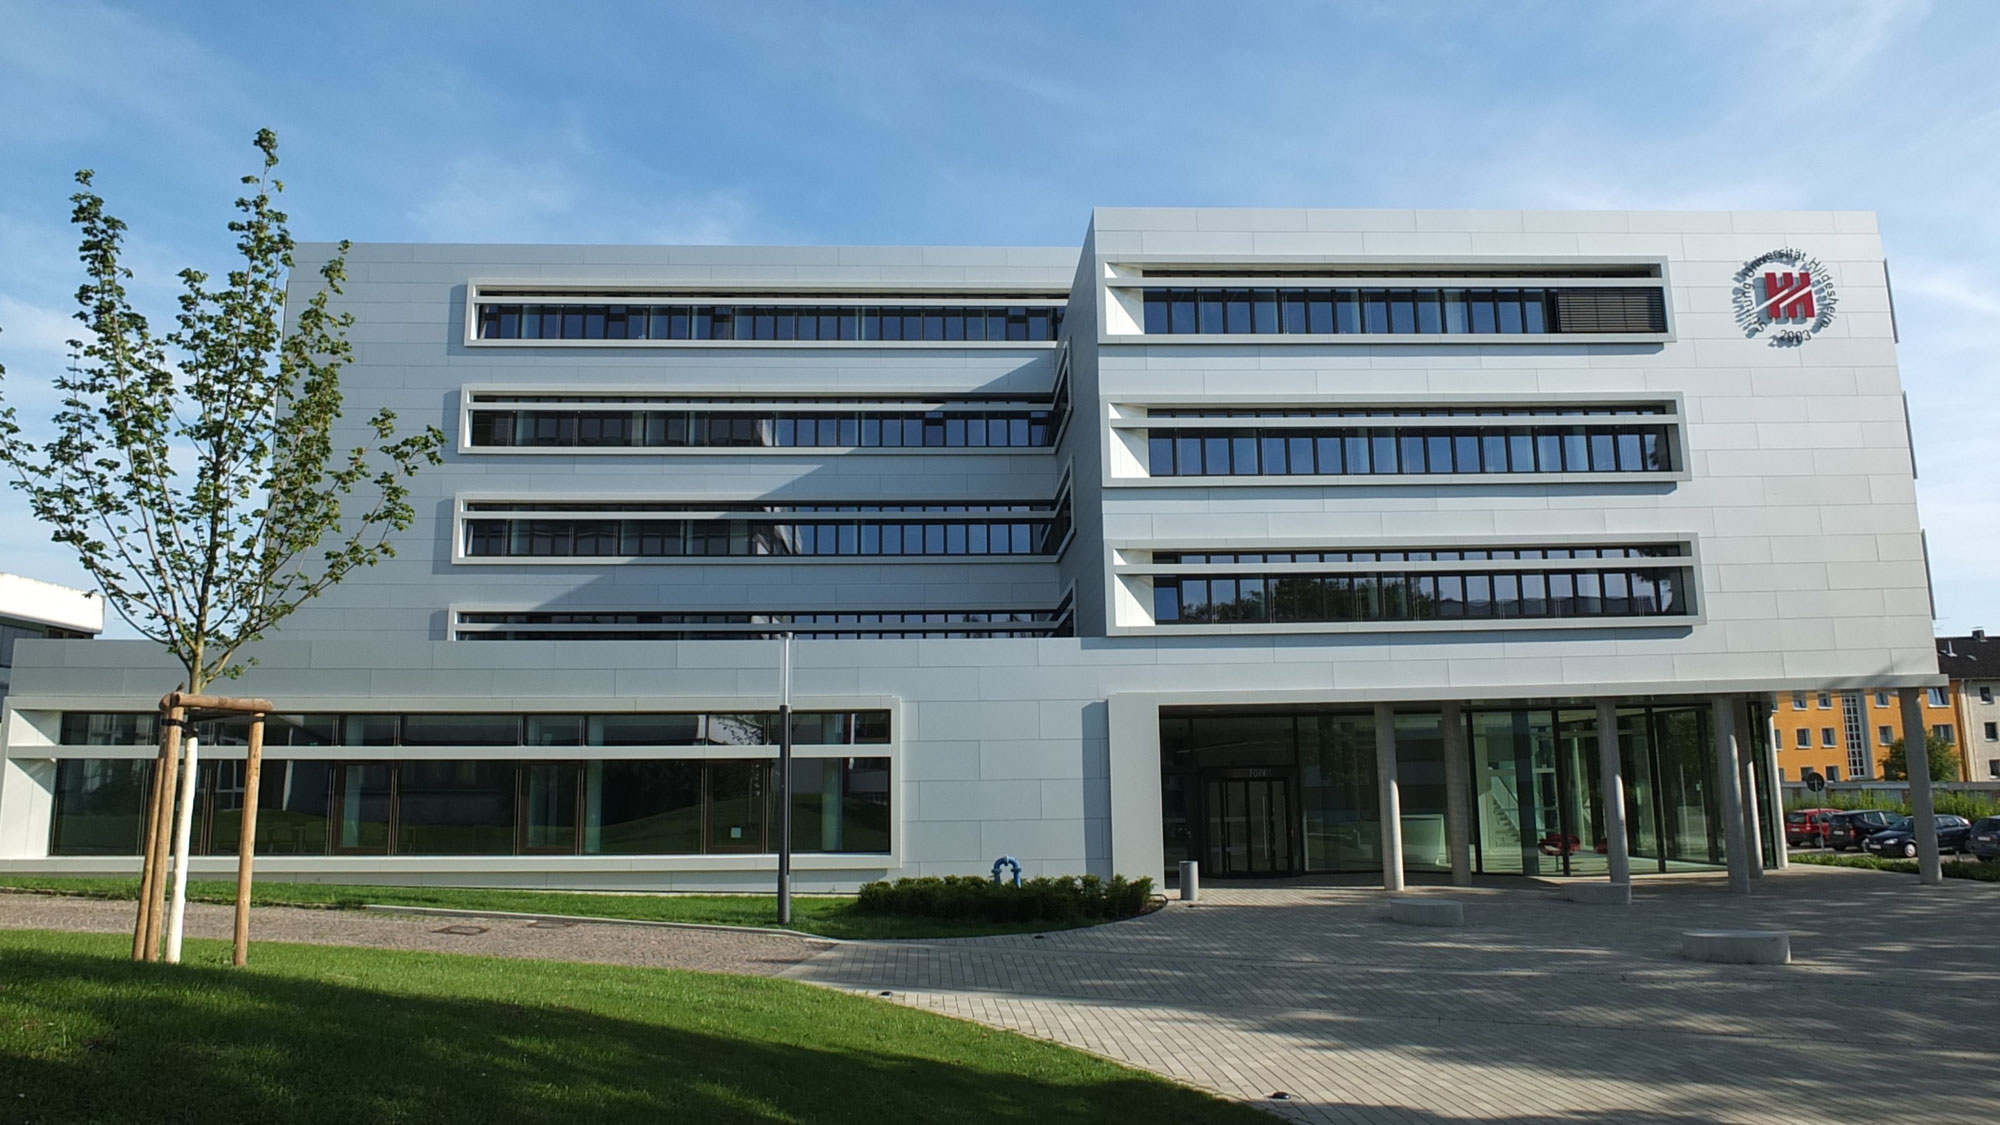 Universität, Hildesheim